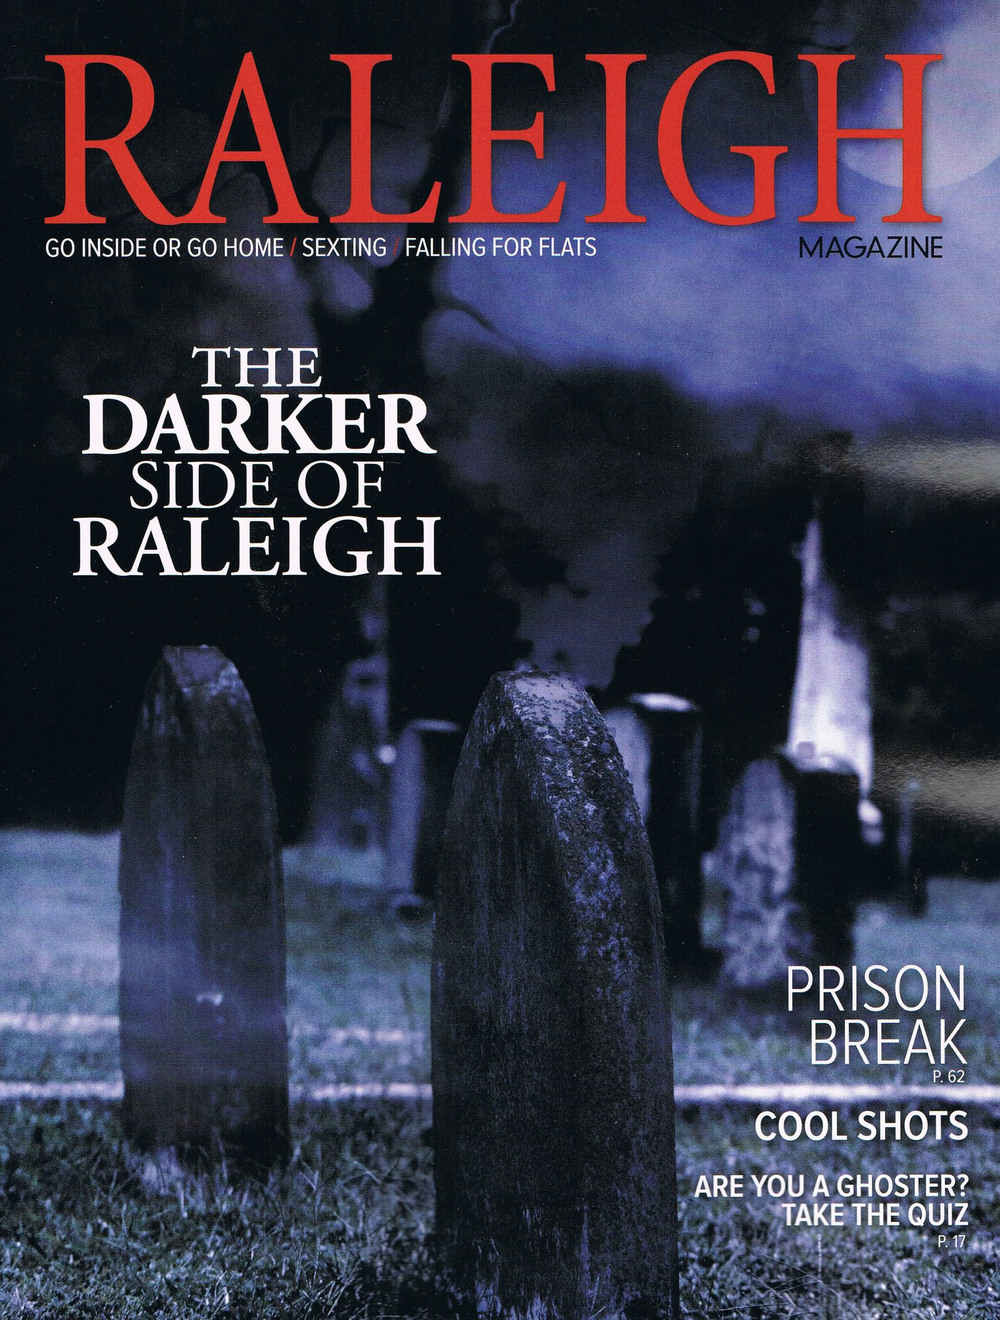 Raleigh Magazine October 2015